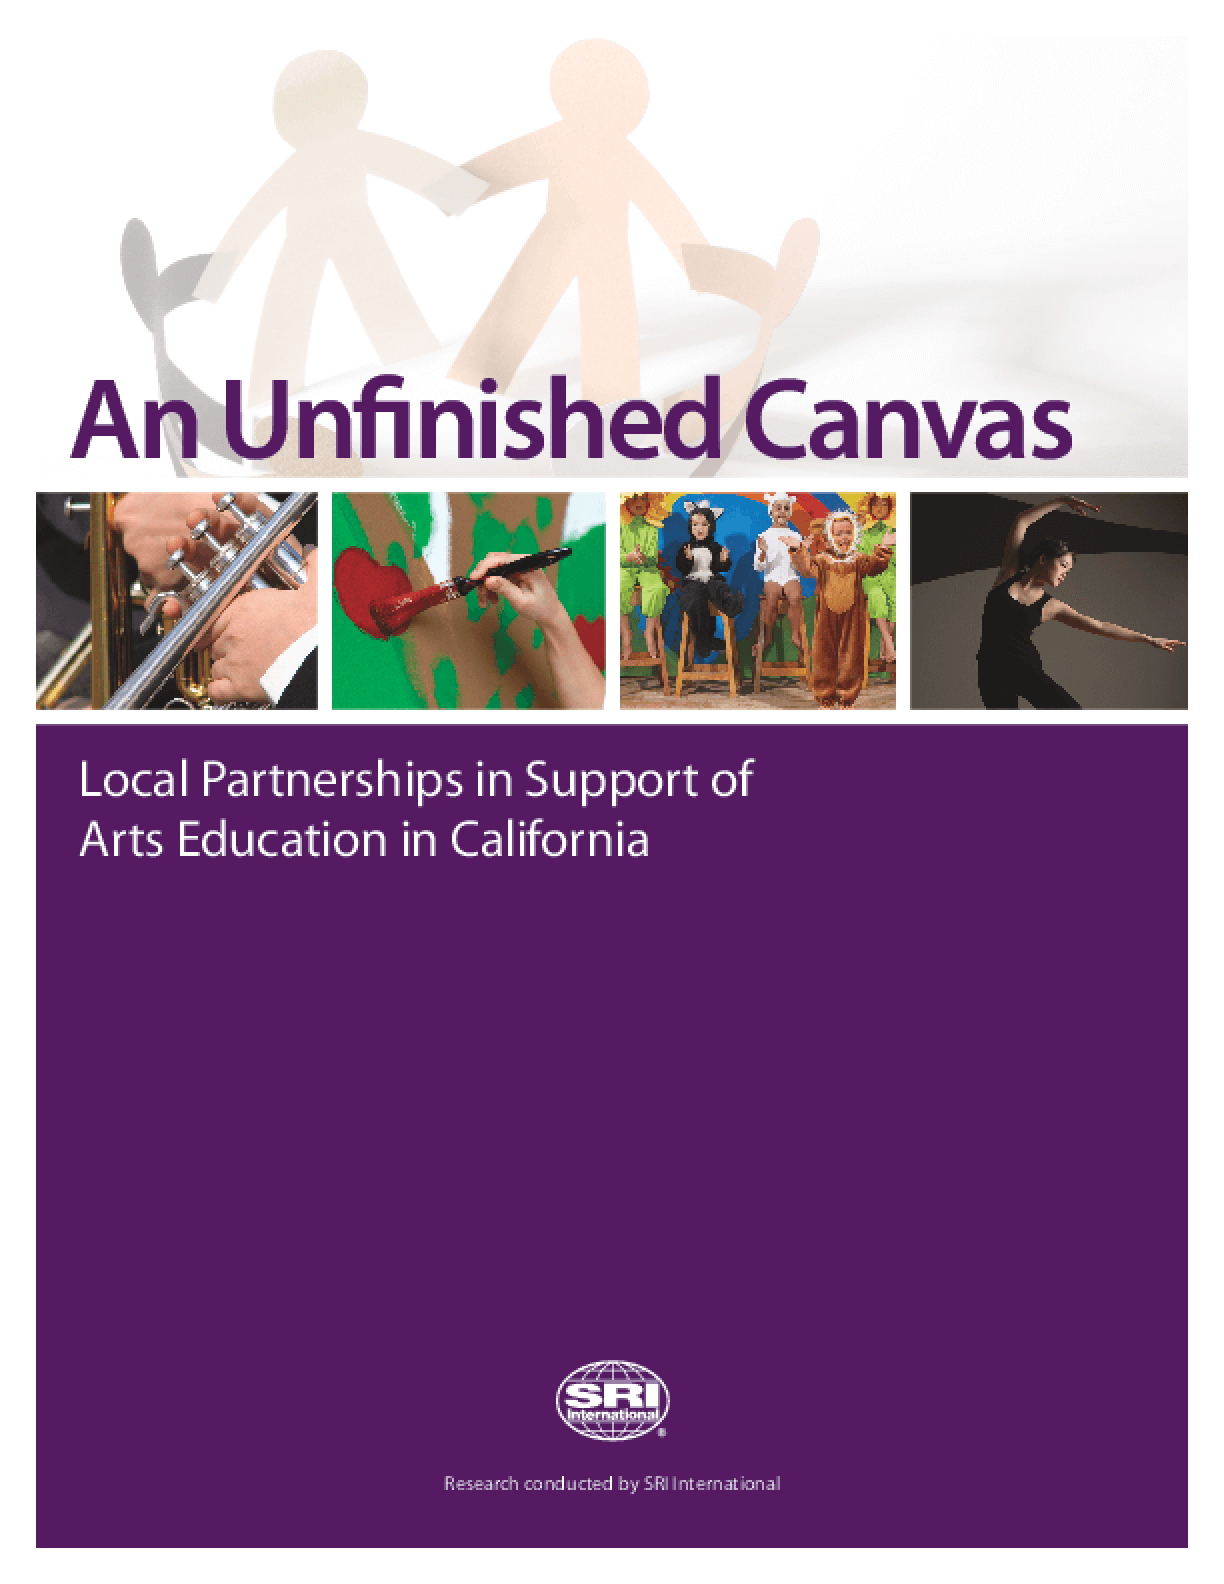 An Unfinished Canvas: Local Partnerships in Support of Arts Education in California